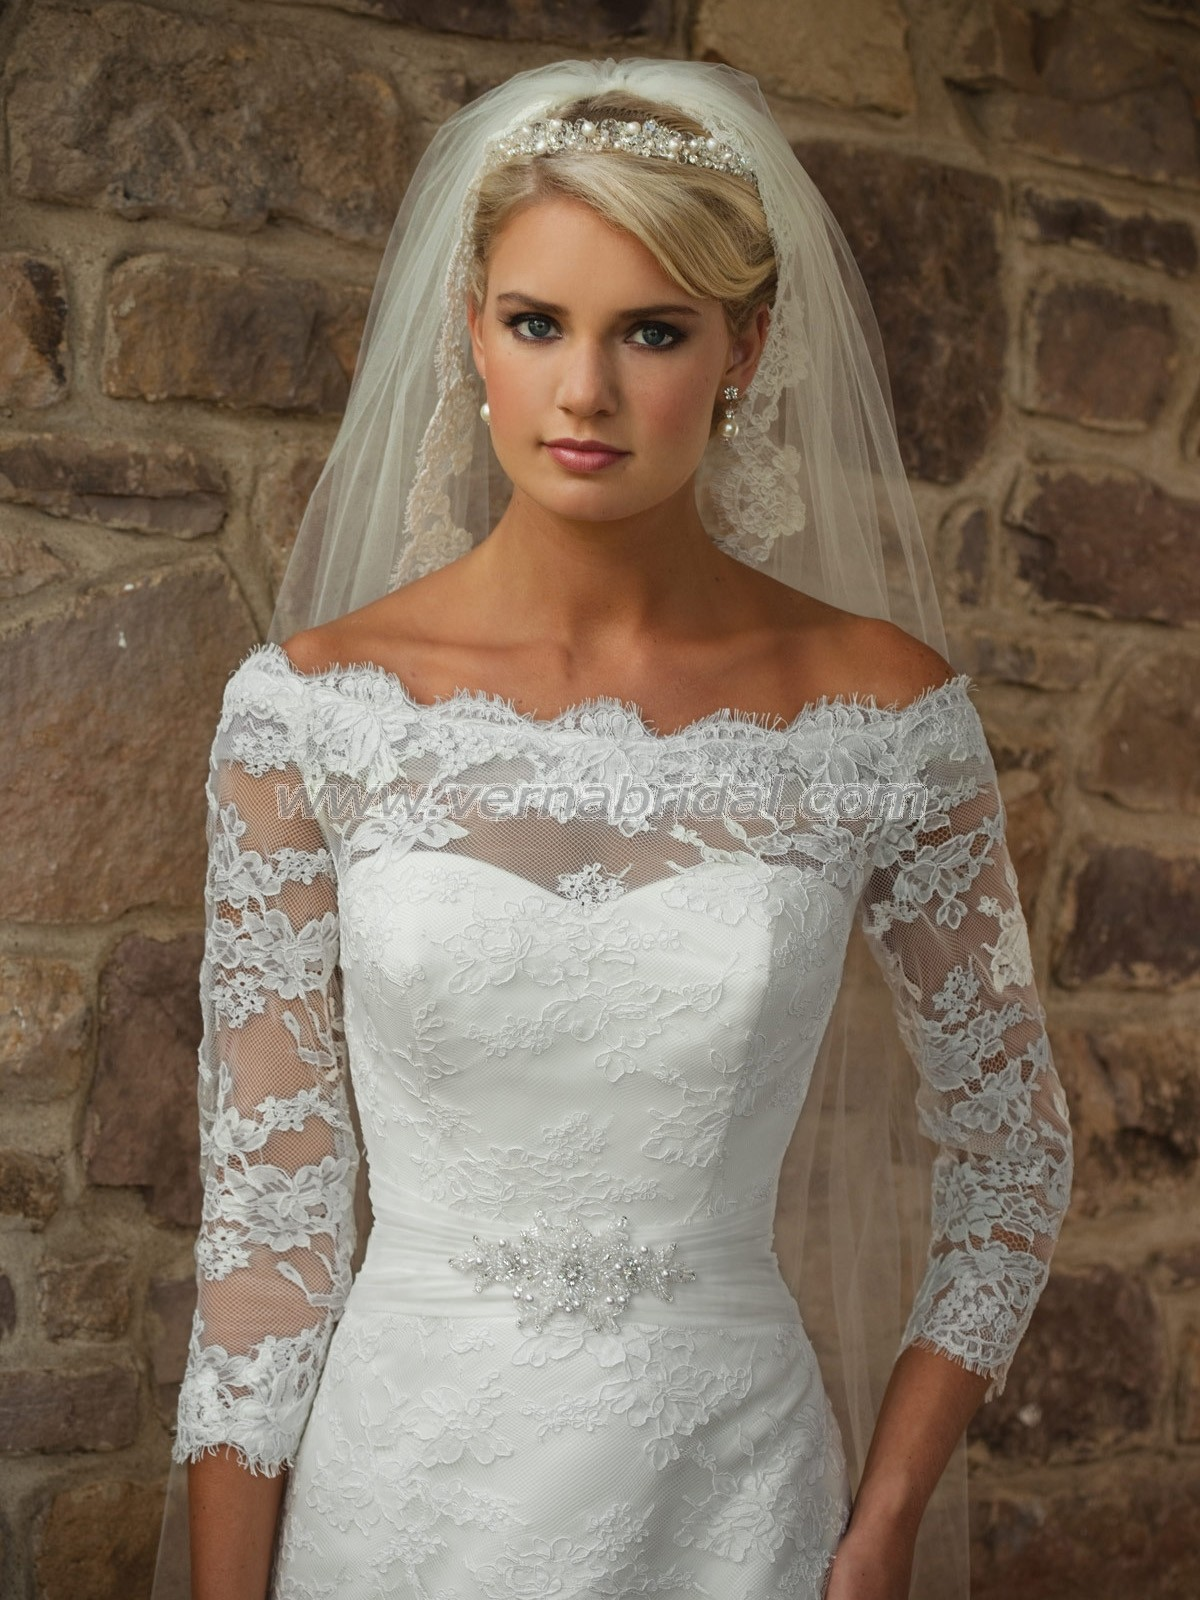 Wedding Dresses  Lace Sleeves : Wedding dresses with lace sleeves sang maestro